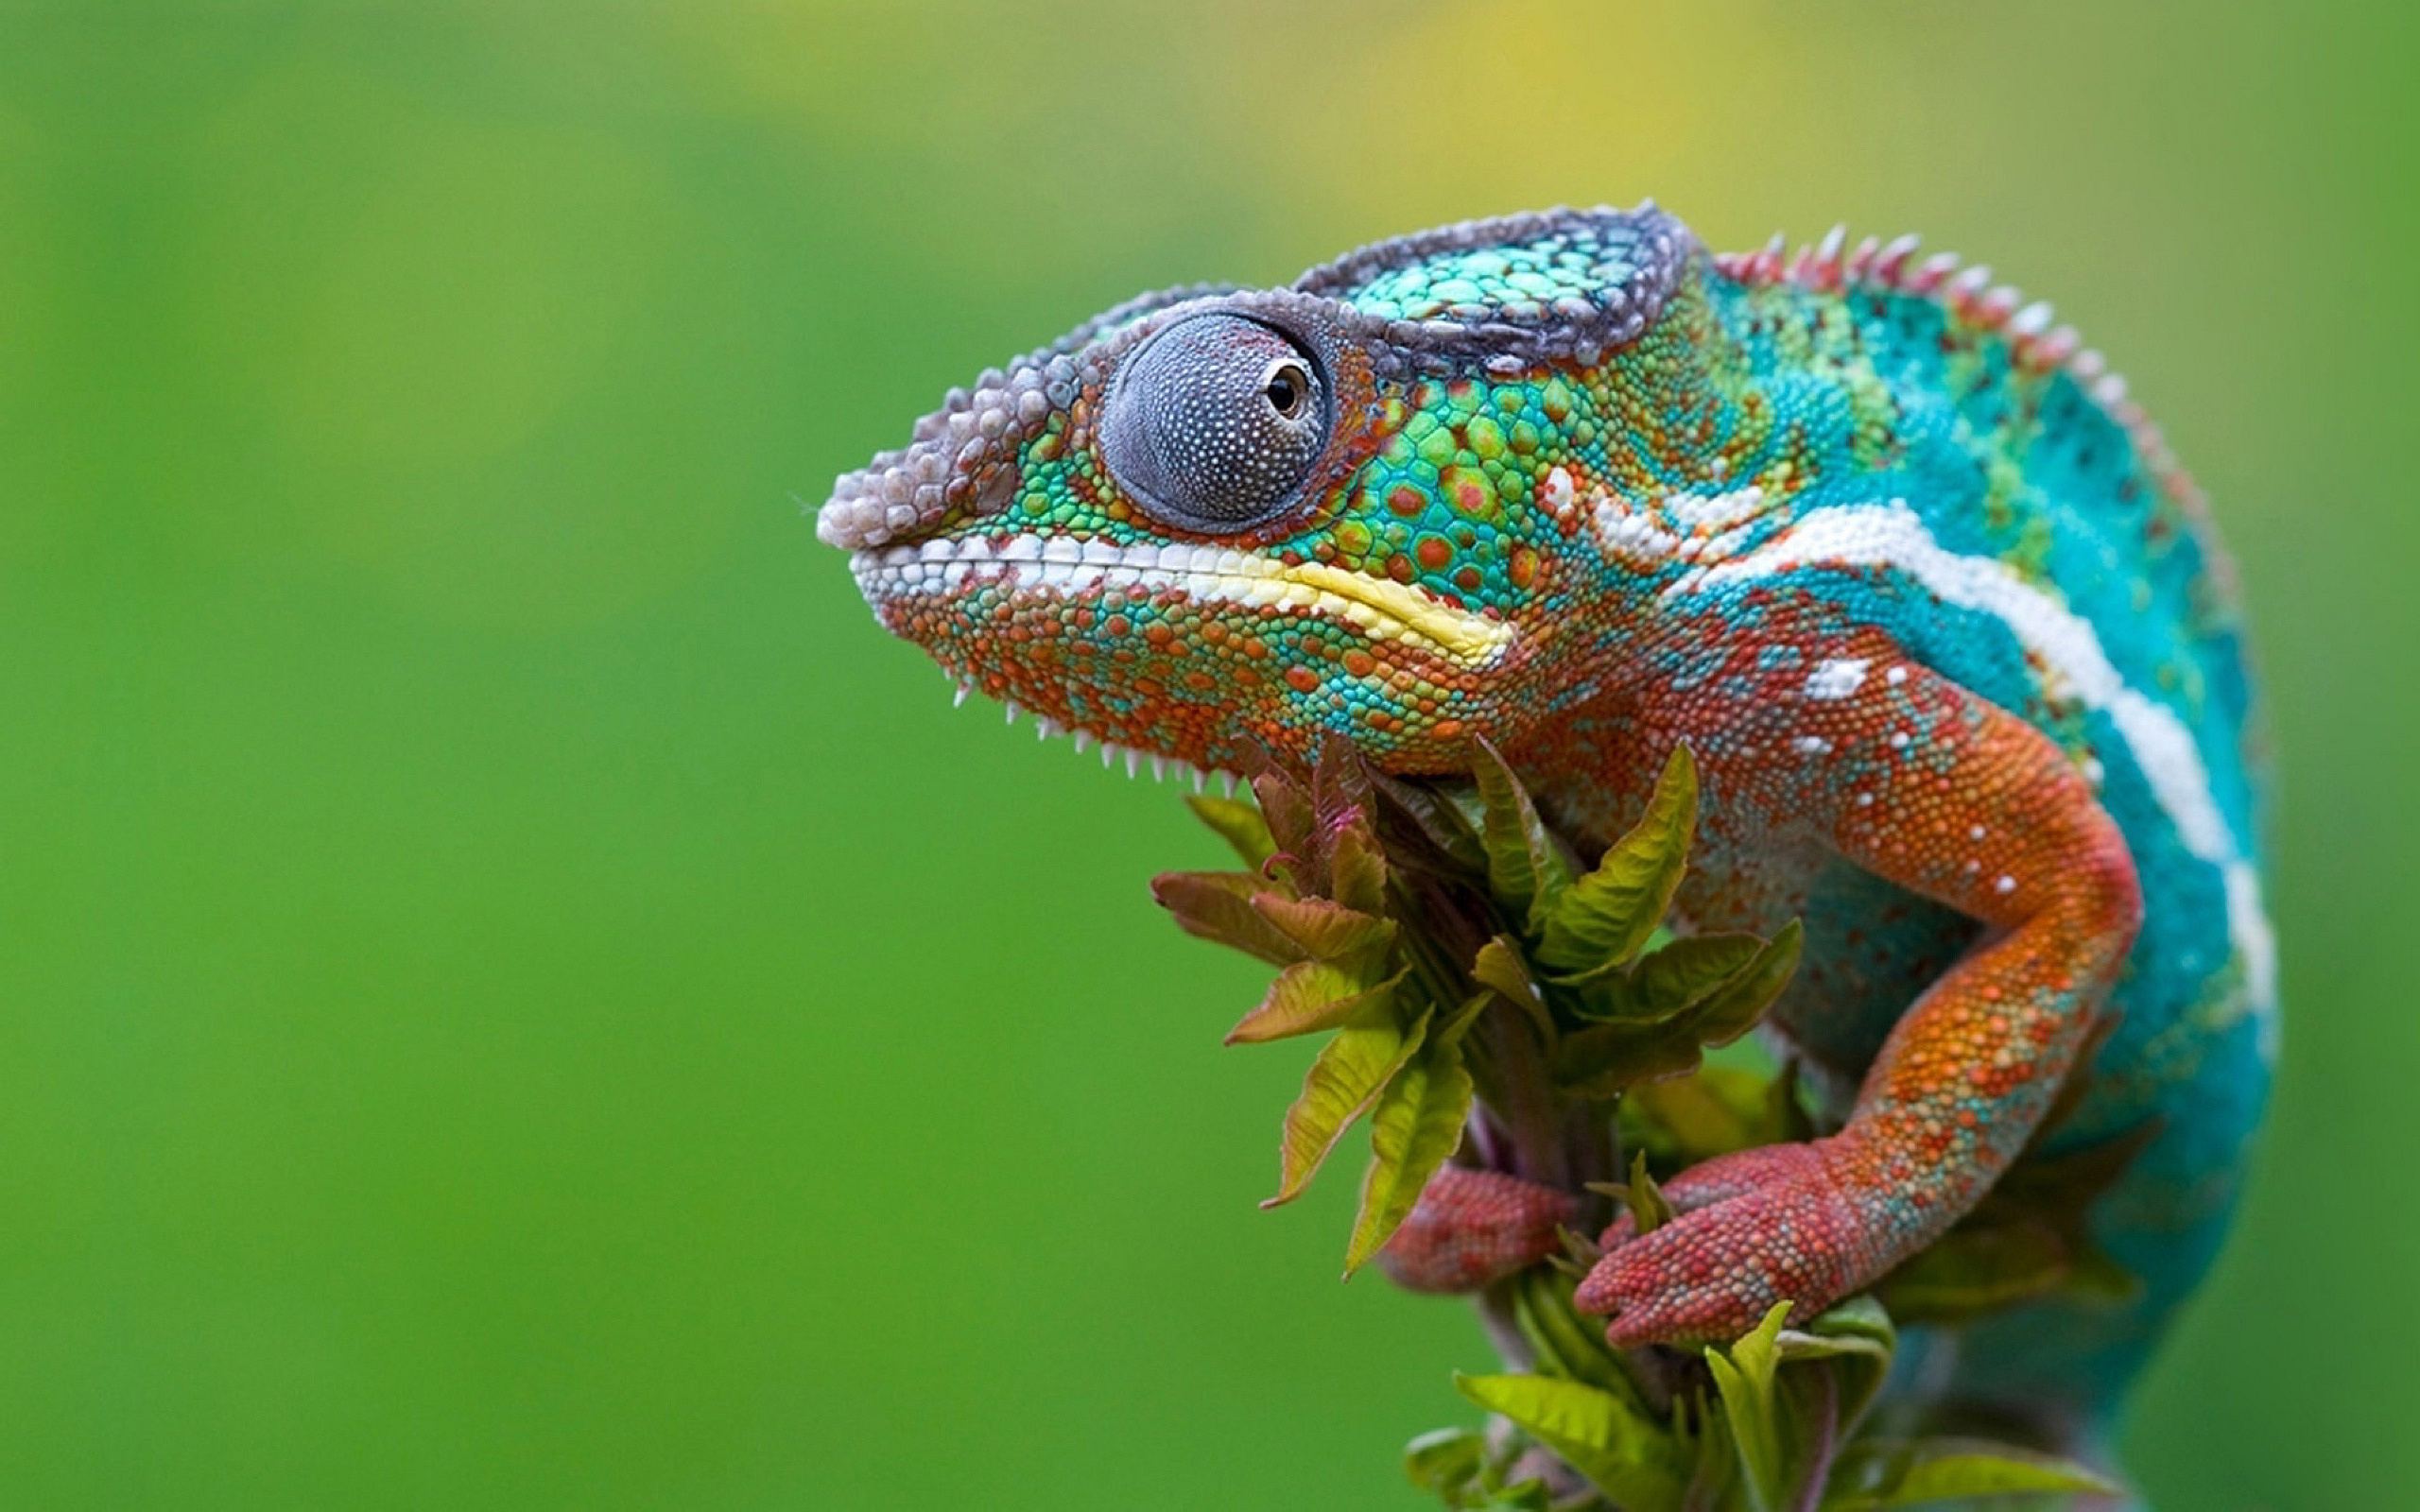 Chameleon Sitting Quiet 289.9 Kb